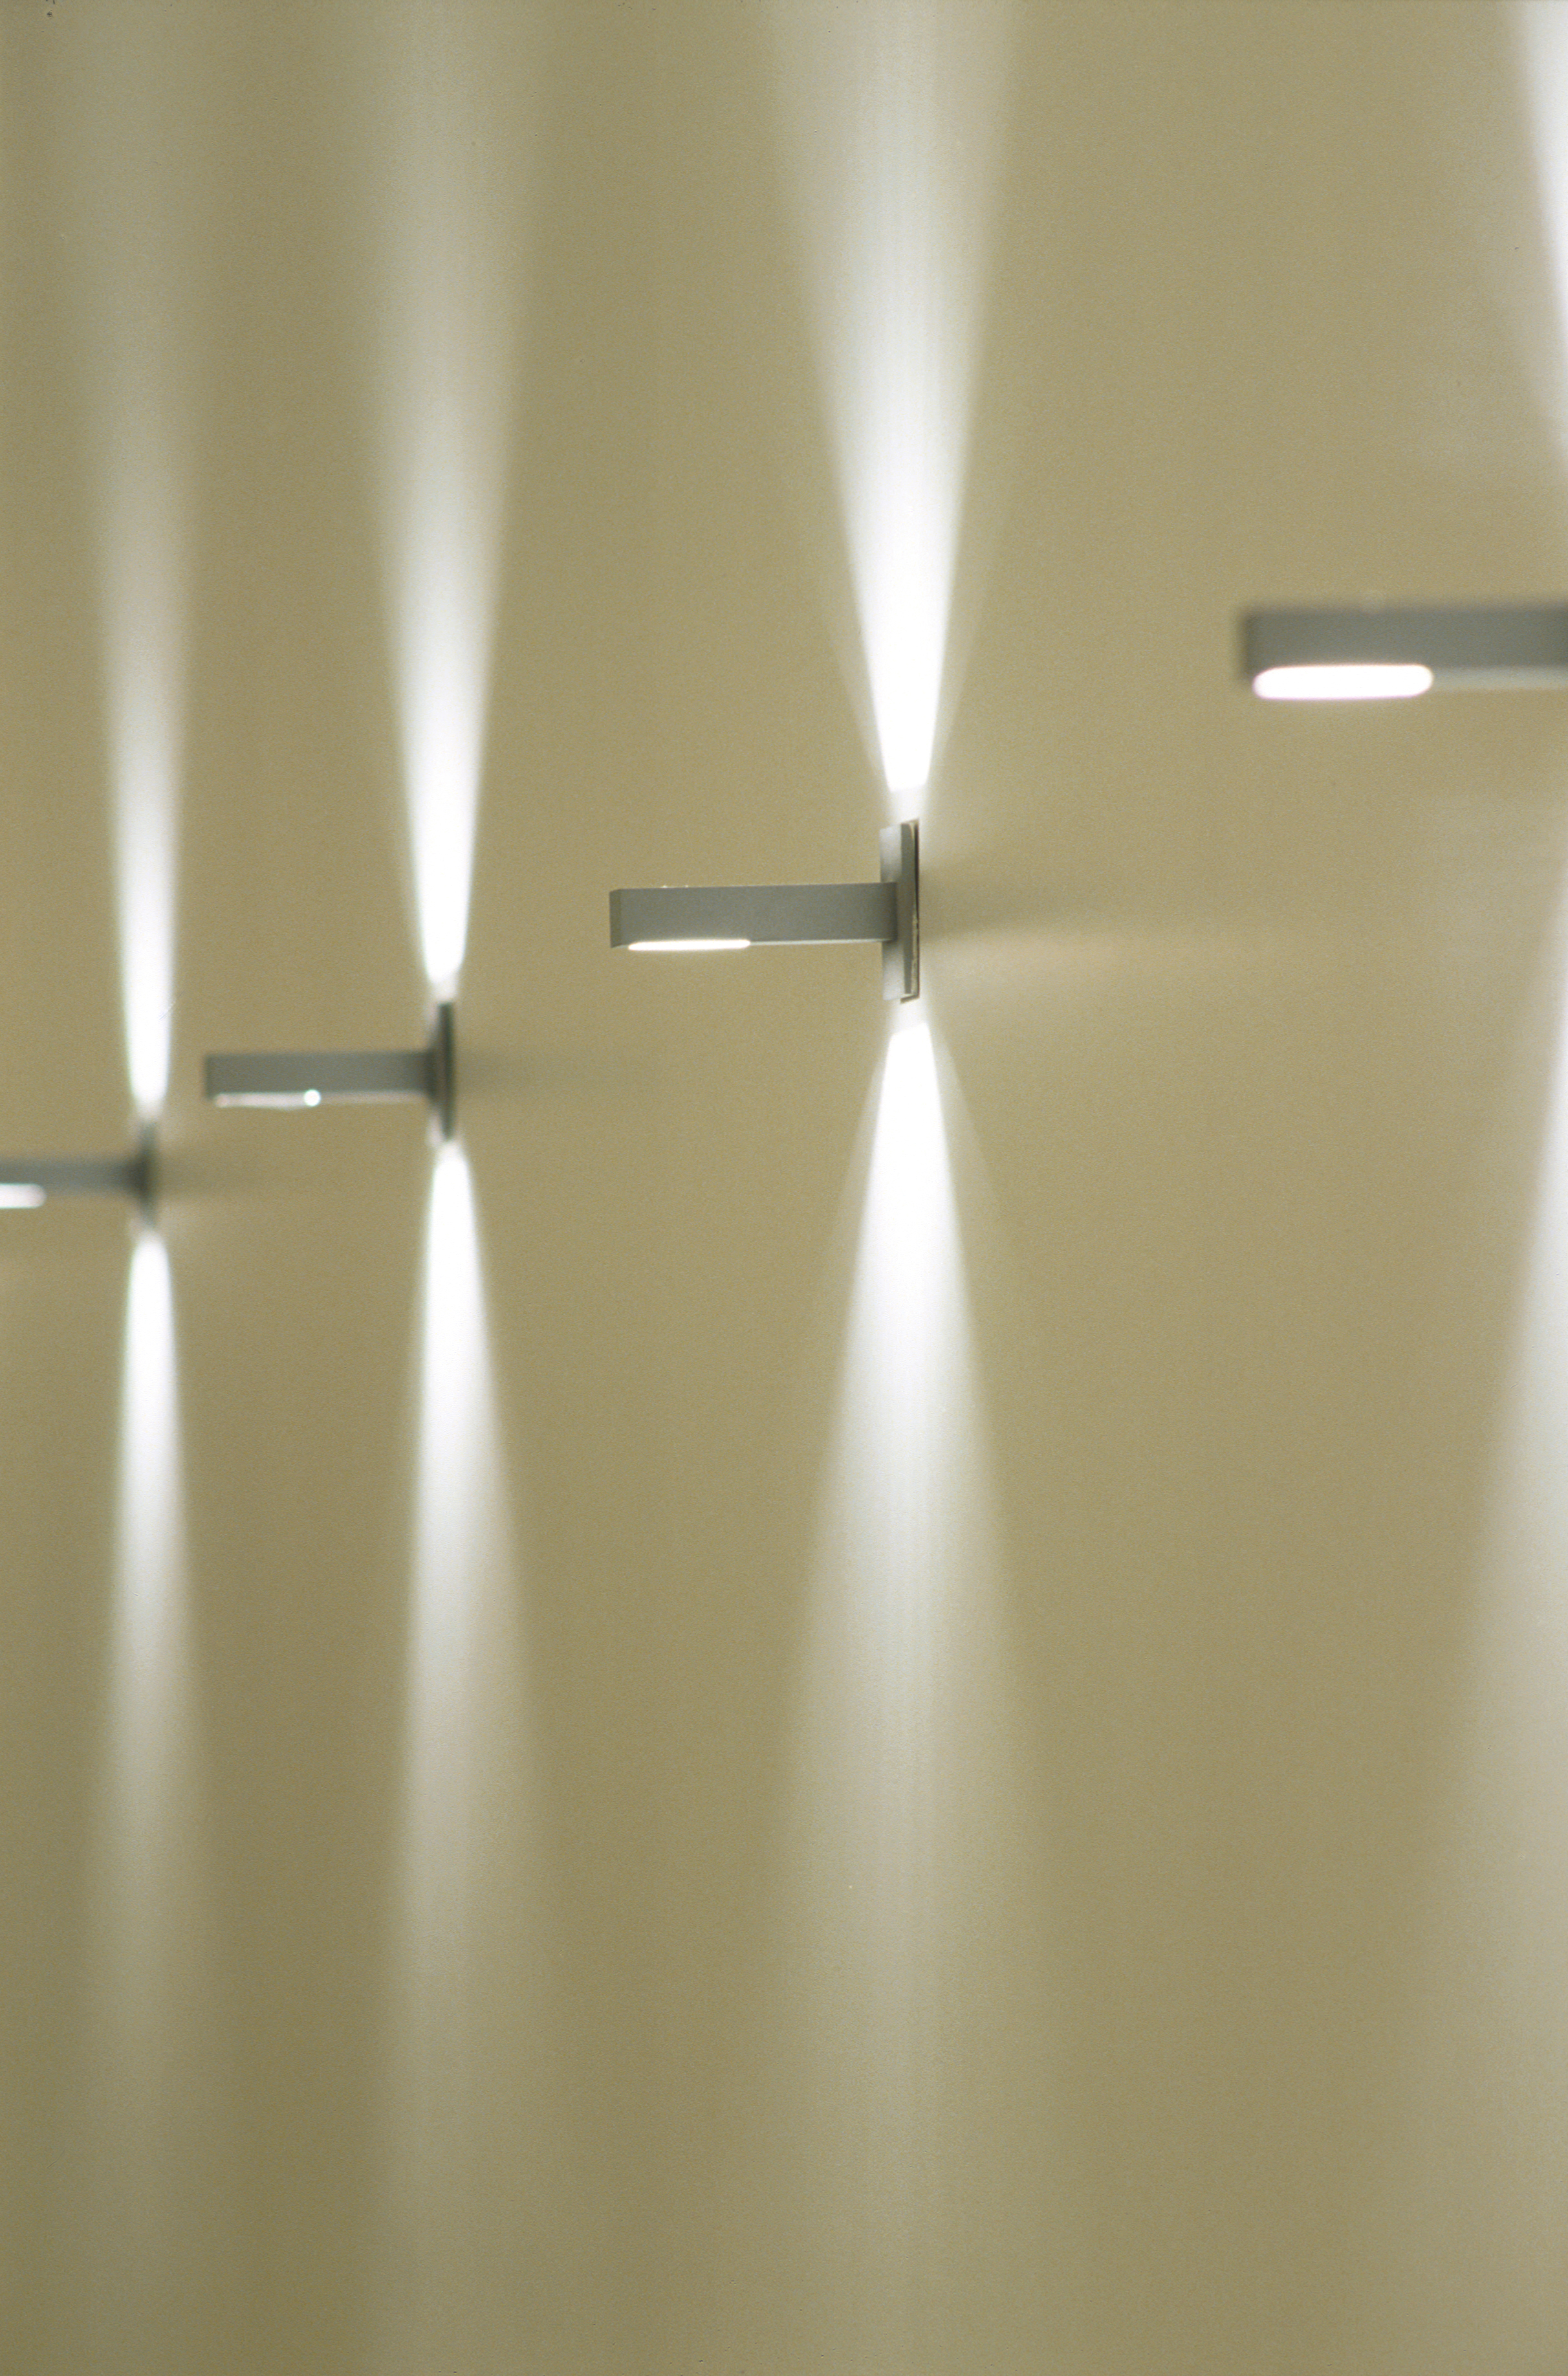 06-BPG-corridor-activation-lighting-detail.jpg